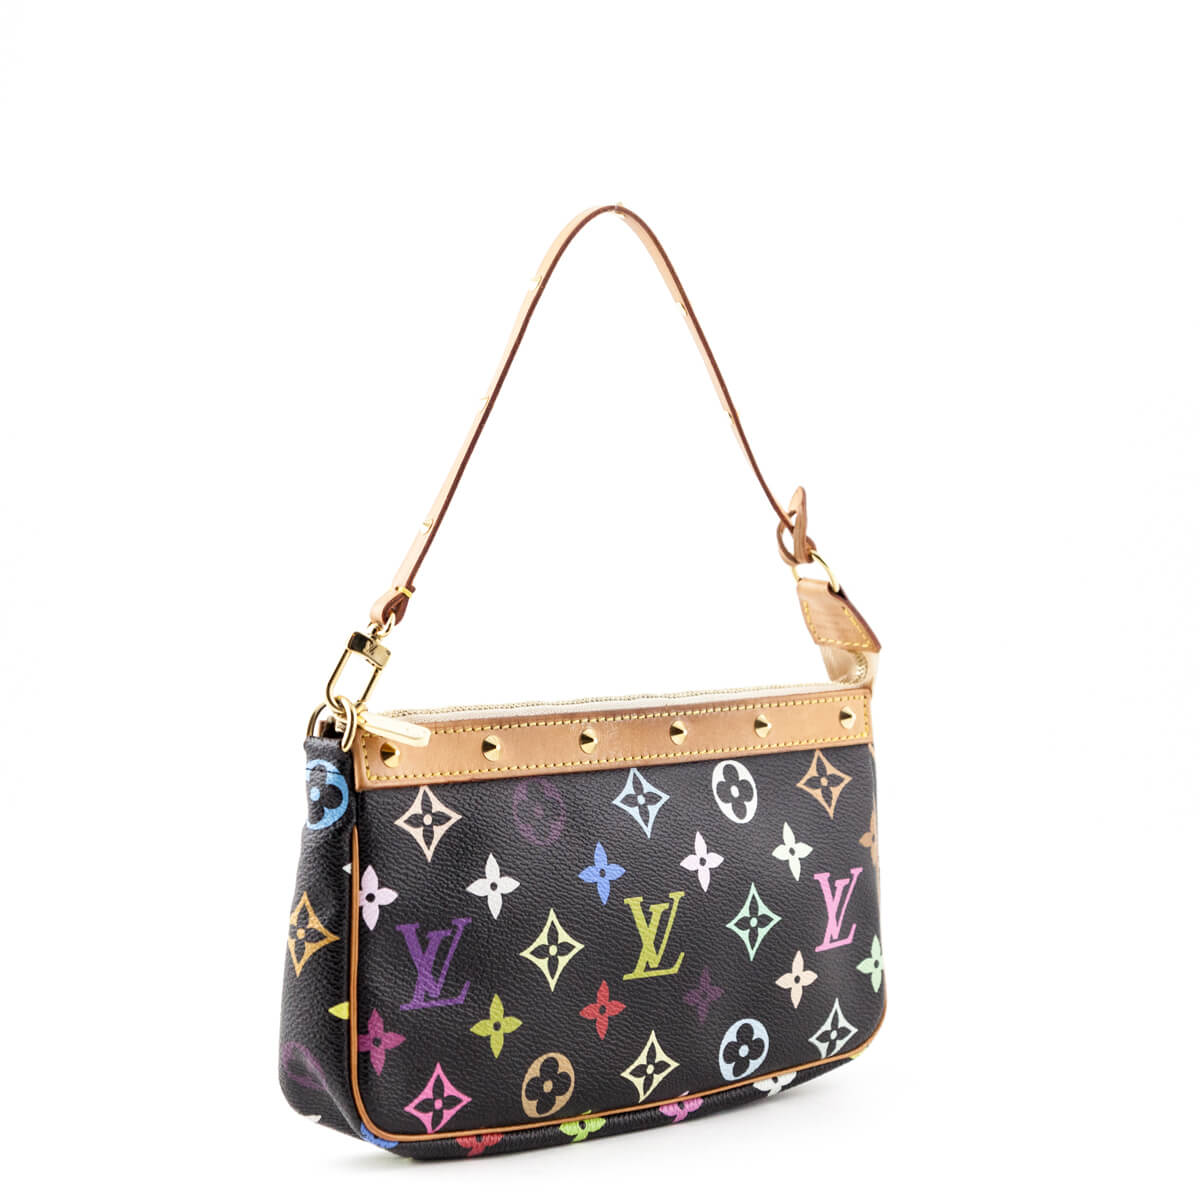 3069f4a21271 ... Louis Vuitton Black Monogram Multicolor Pochette - LOVE that BAG -  Preowned Authentic Designer Handbags ...